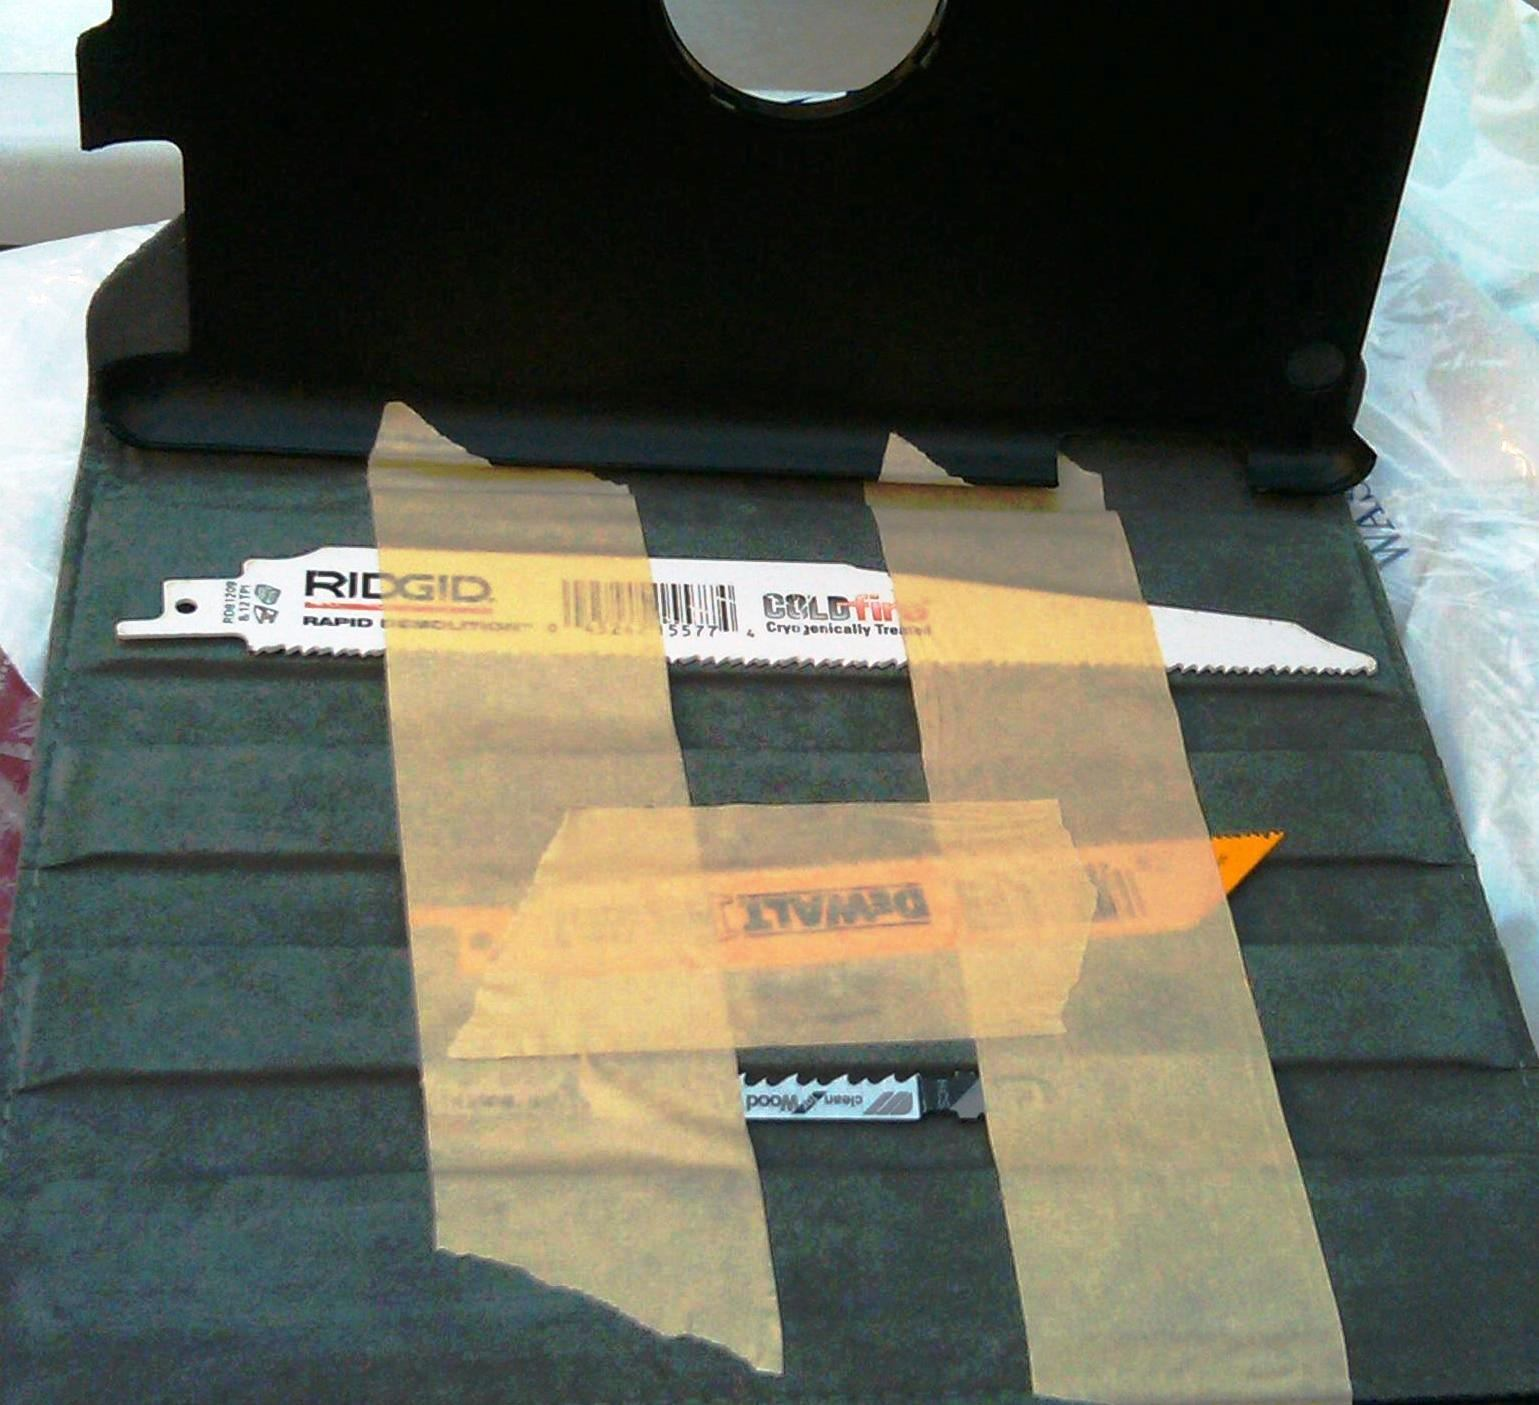 Three saw blades were discovered taped to the inside of an iPad case at Washington Dulles (IAD).